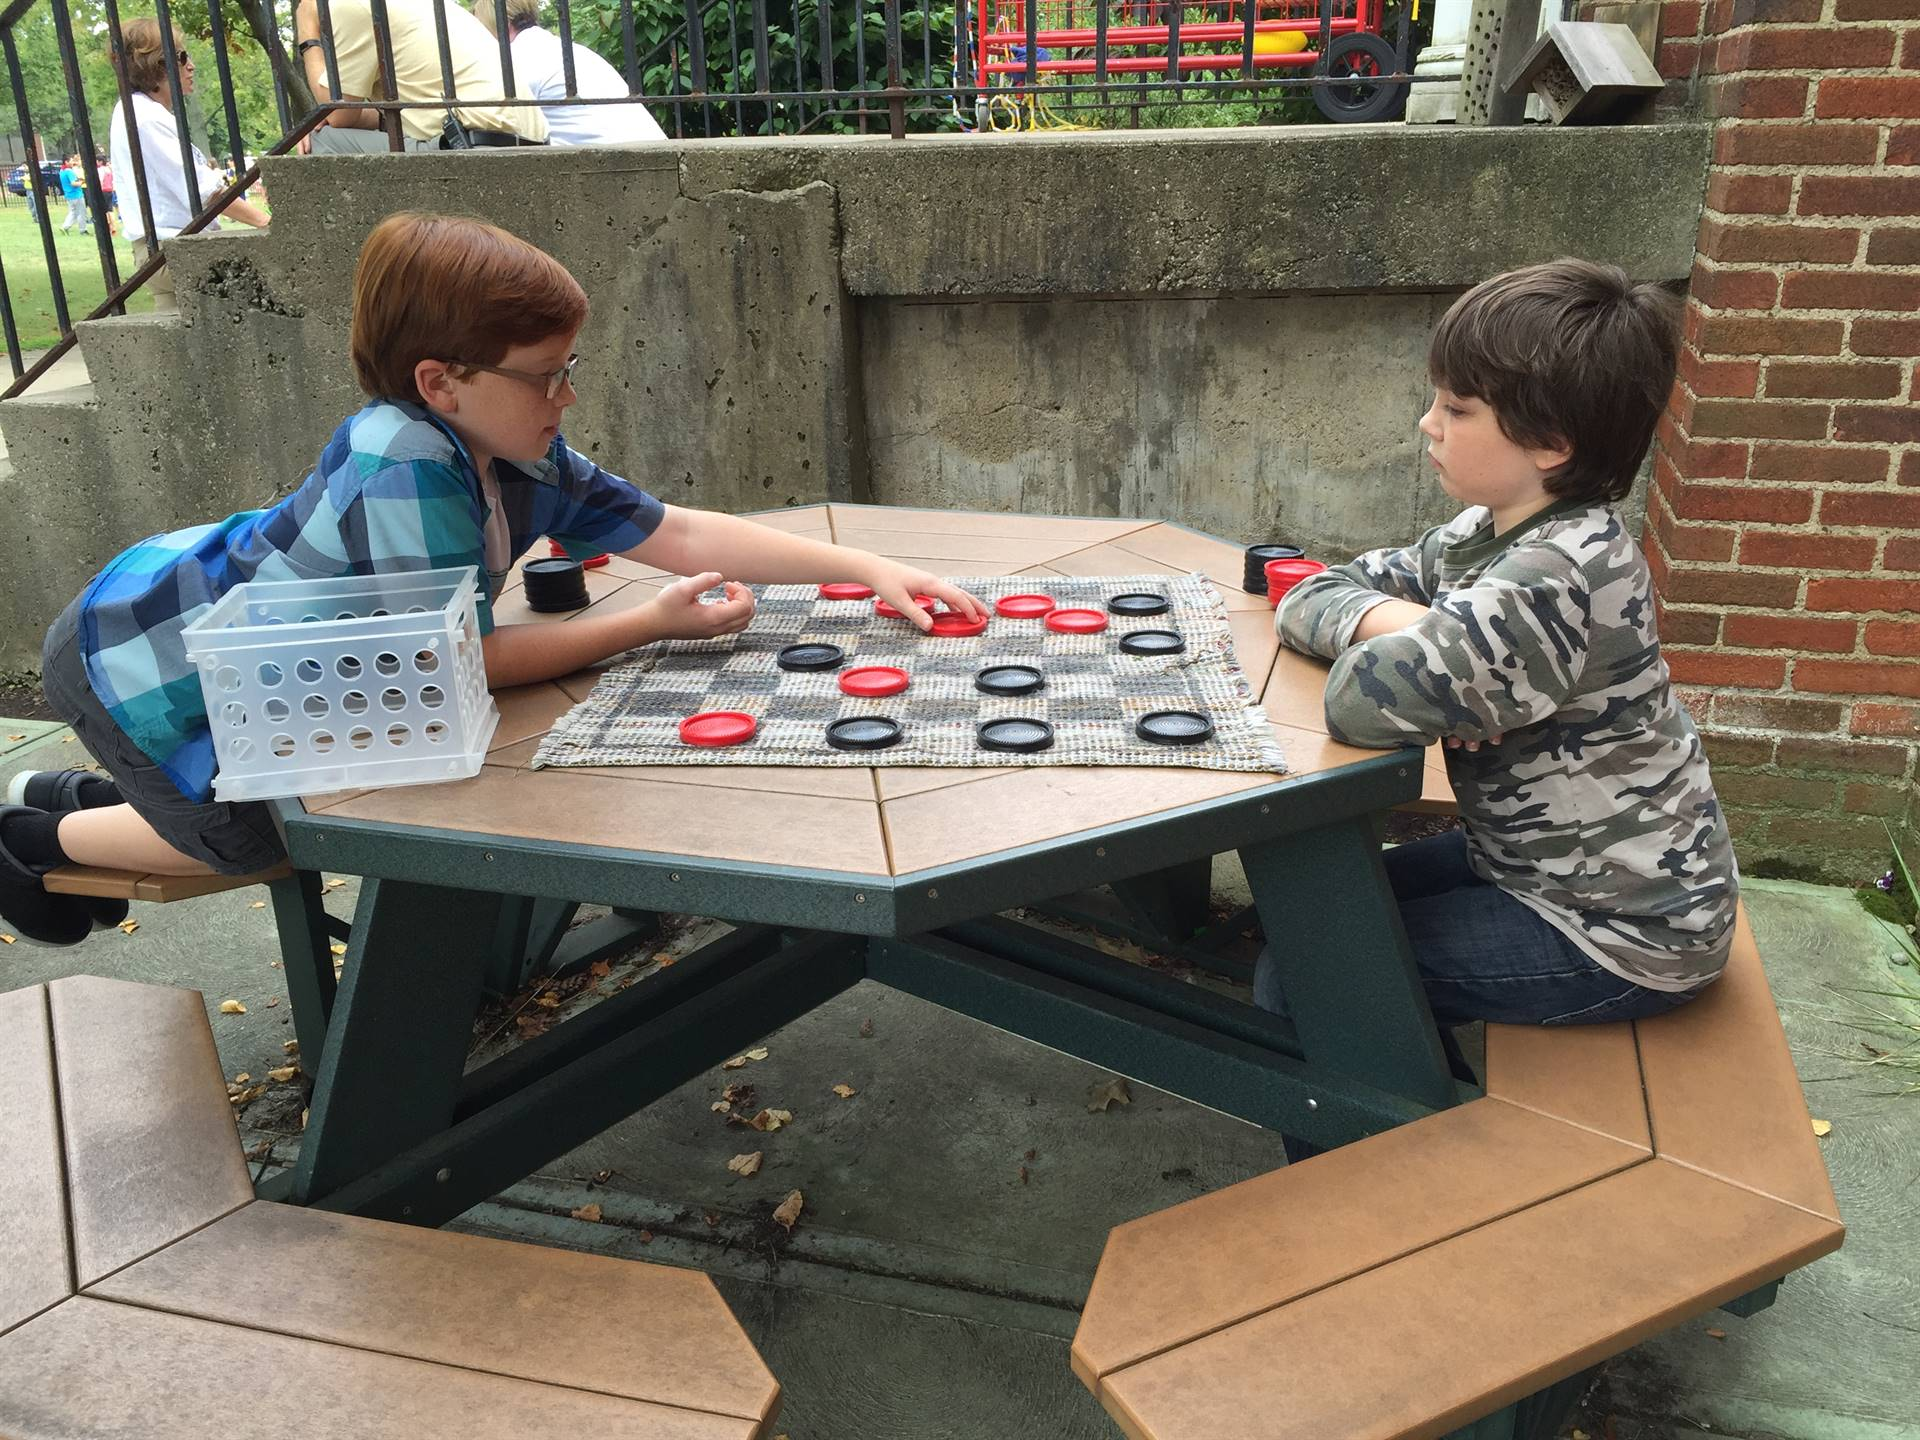 Boys playing checkers at recess